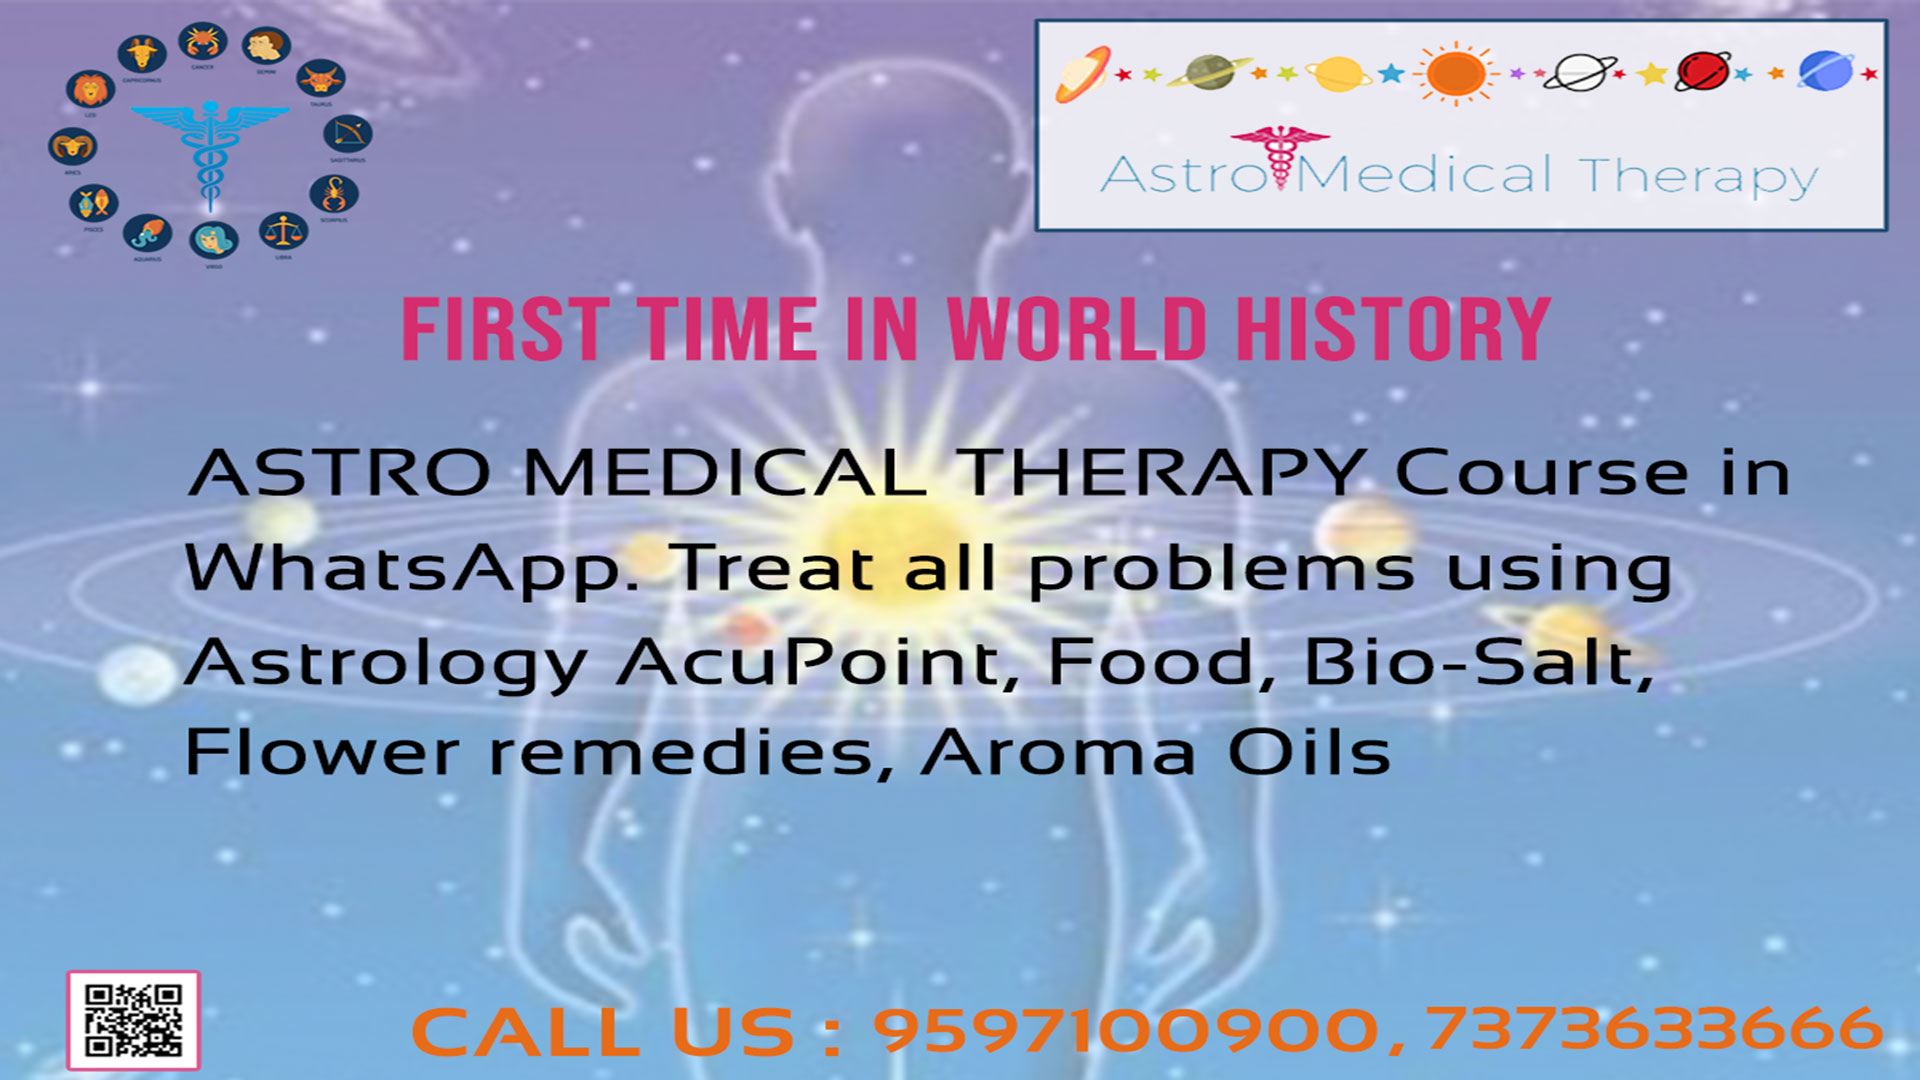 Image for Astro Medical Therapy Course in WhatsApp | Call:9597100900